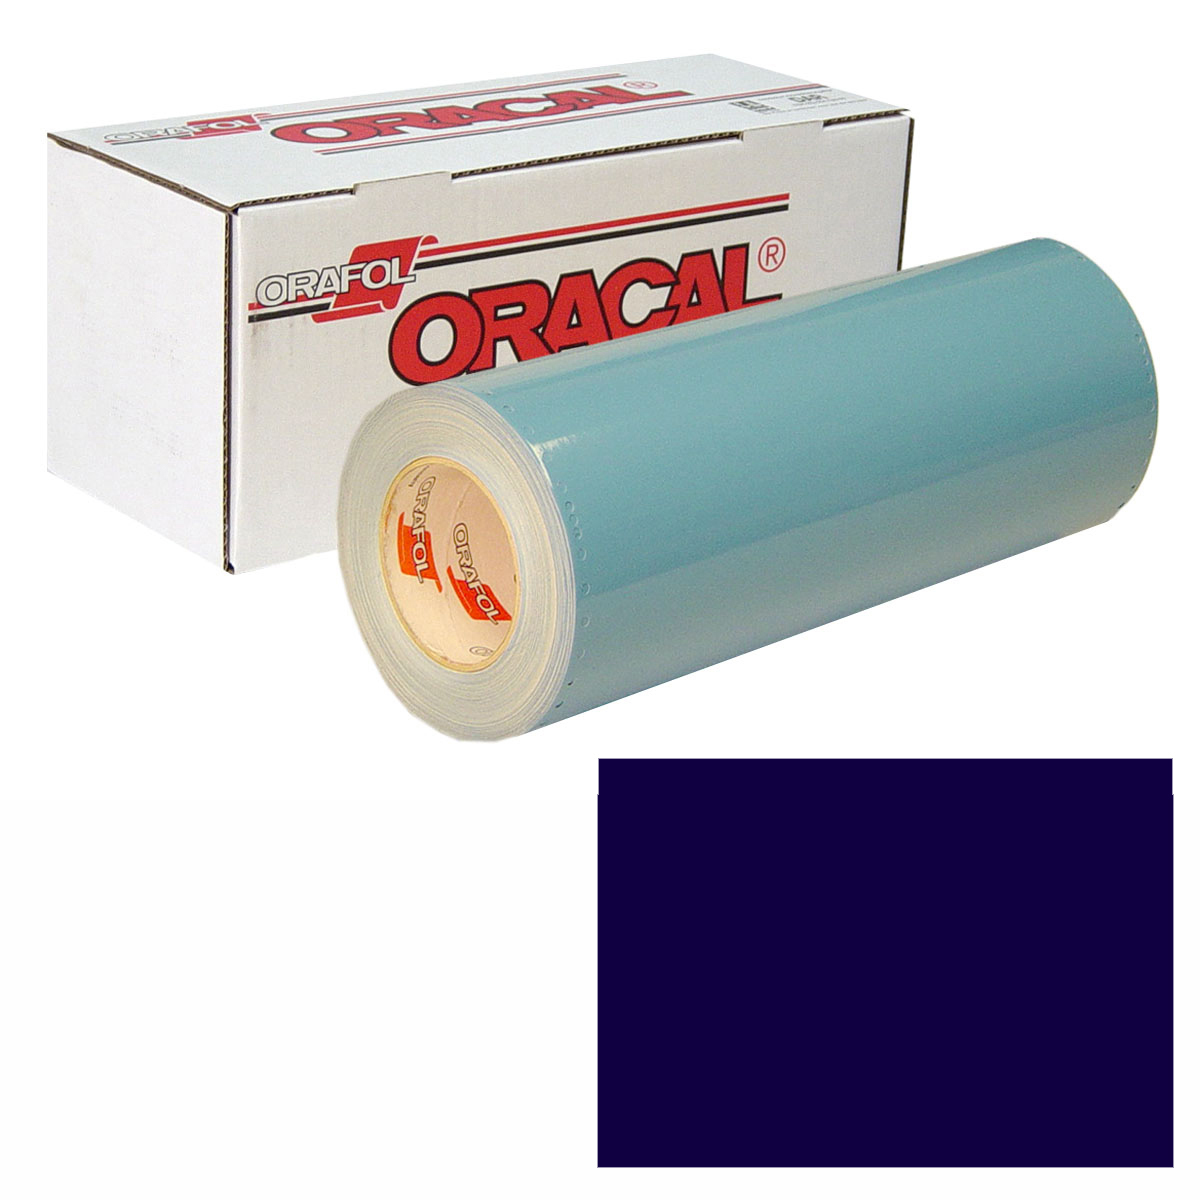 ORACAL 751 Unp 24in X 10yd 532 Black Blue